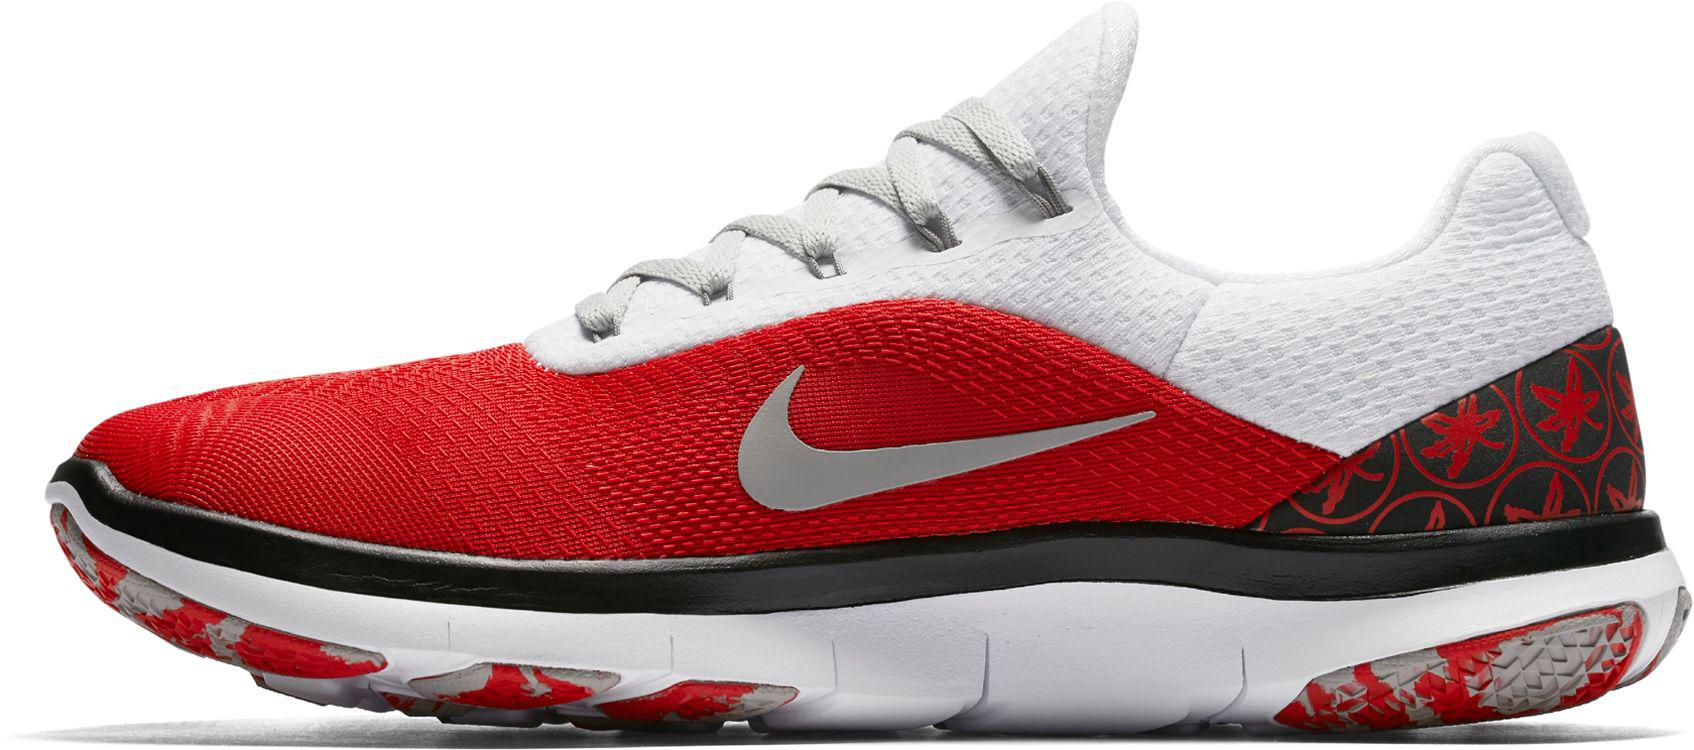 1299e86c4f Nike - Red Free Trainer V7 Week Zero Ohio State Edition Training Shoes for  Men -